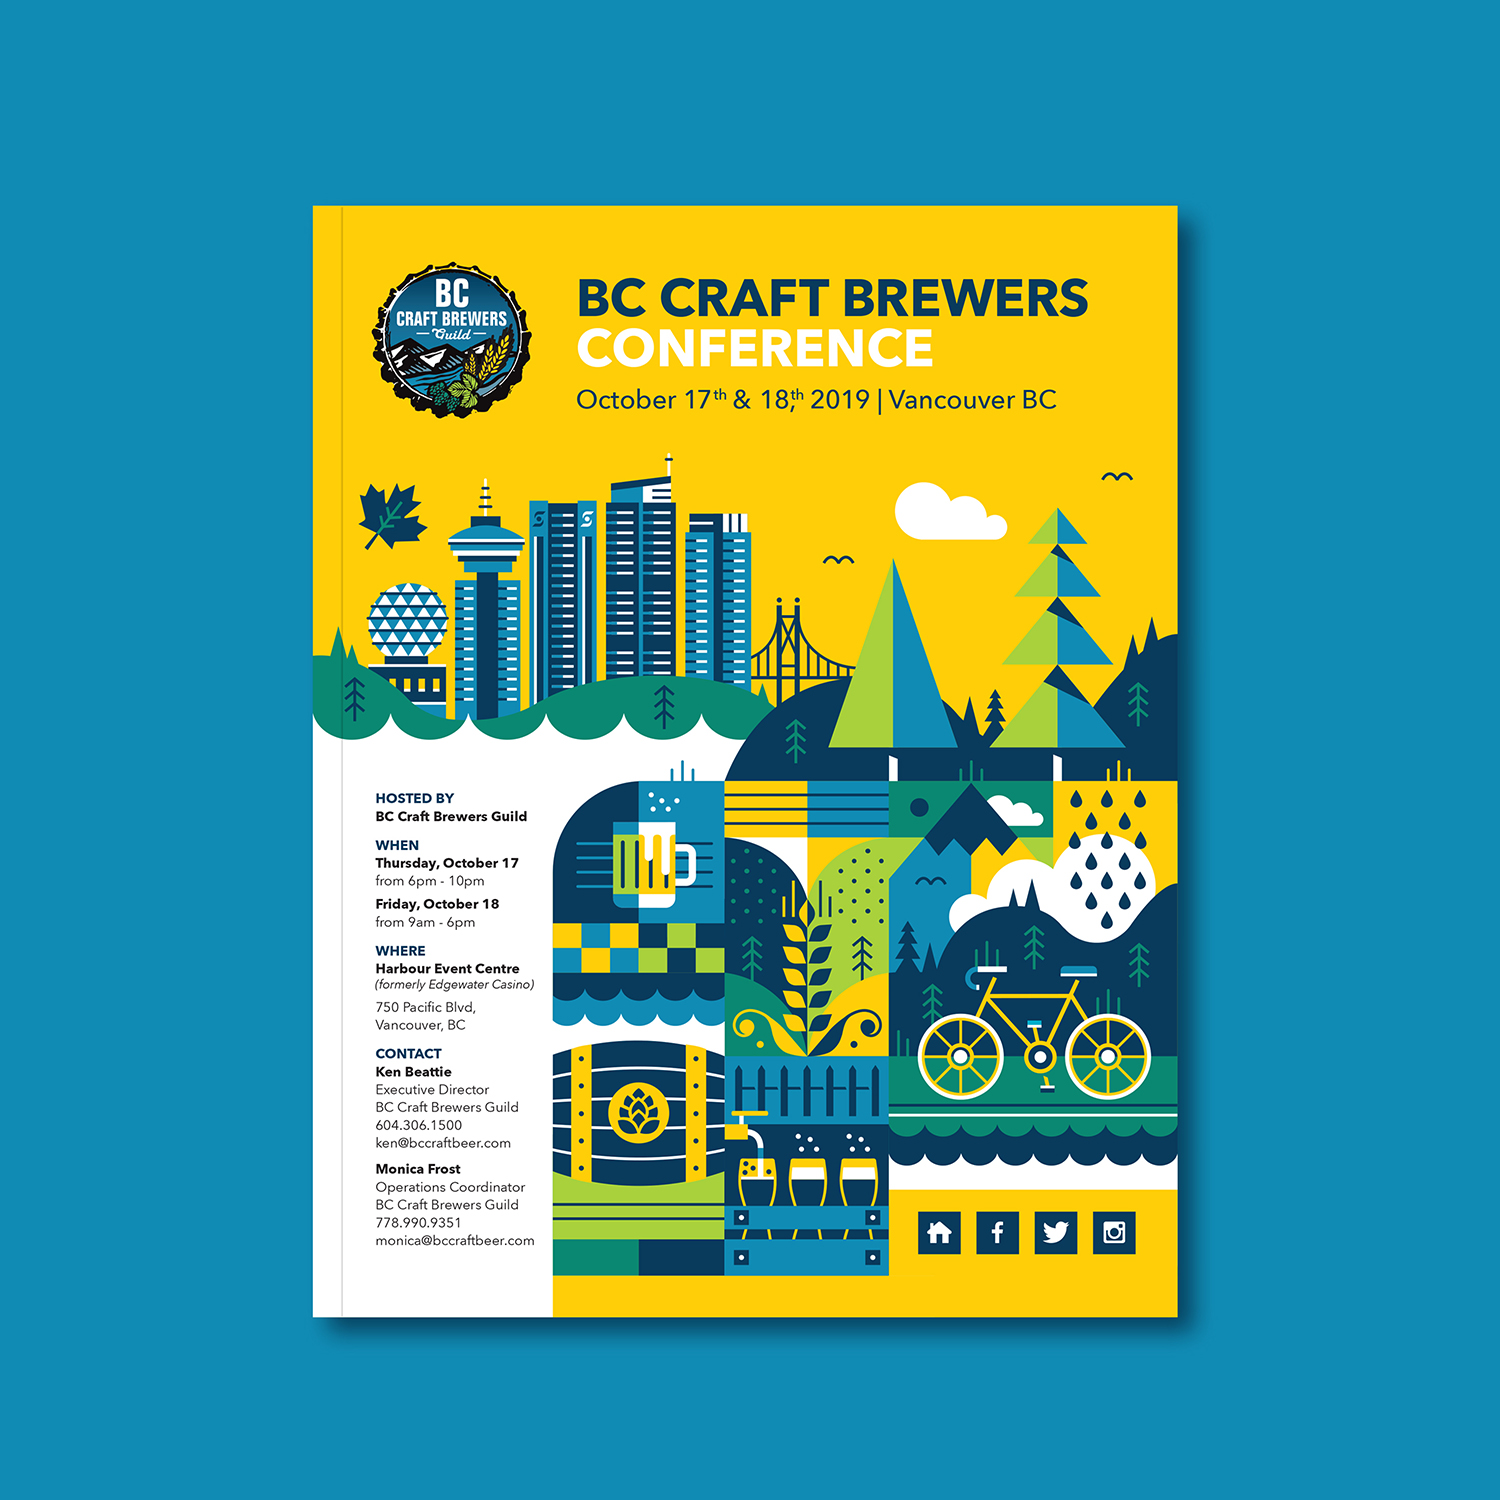 BC Craft Brewers Conference - MARKETING COLLATERAL + ILLUSTRATION + DIGITAL ASSETS